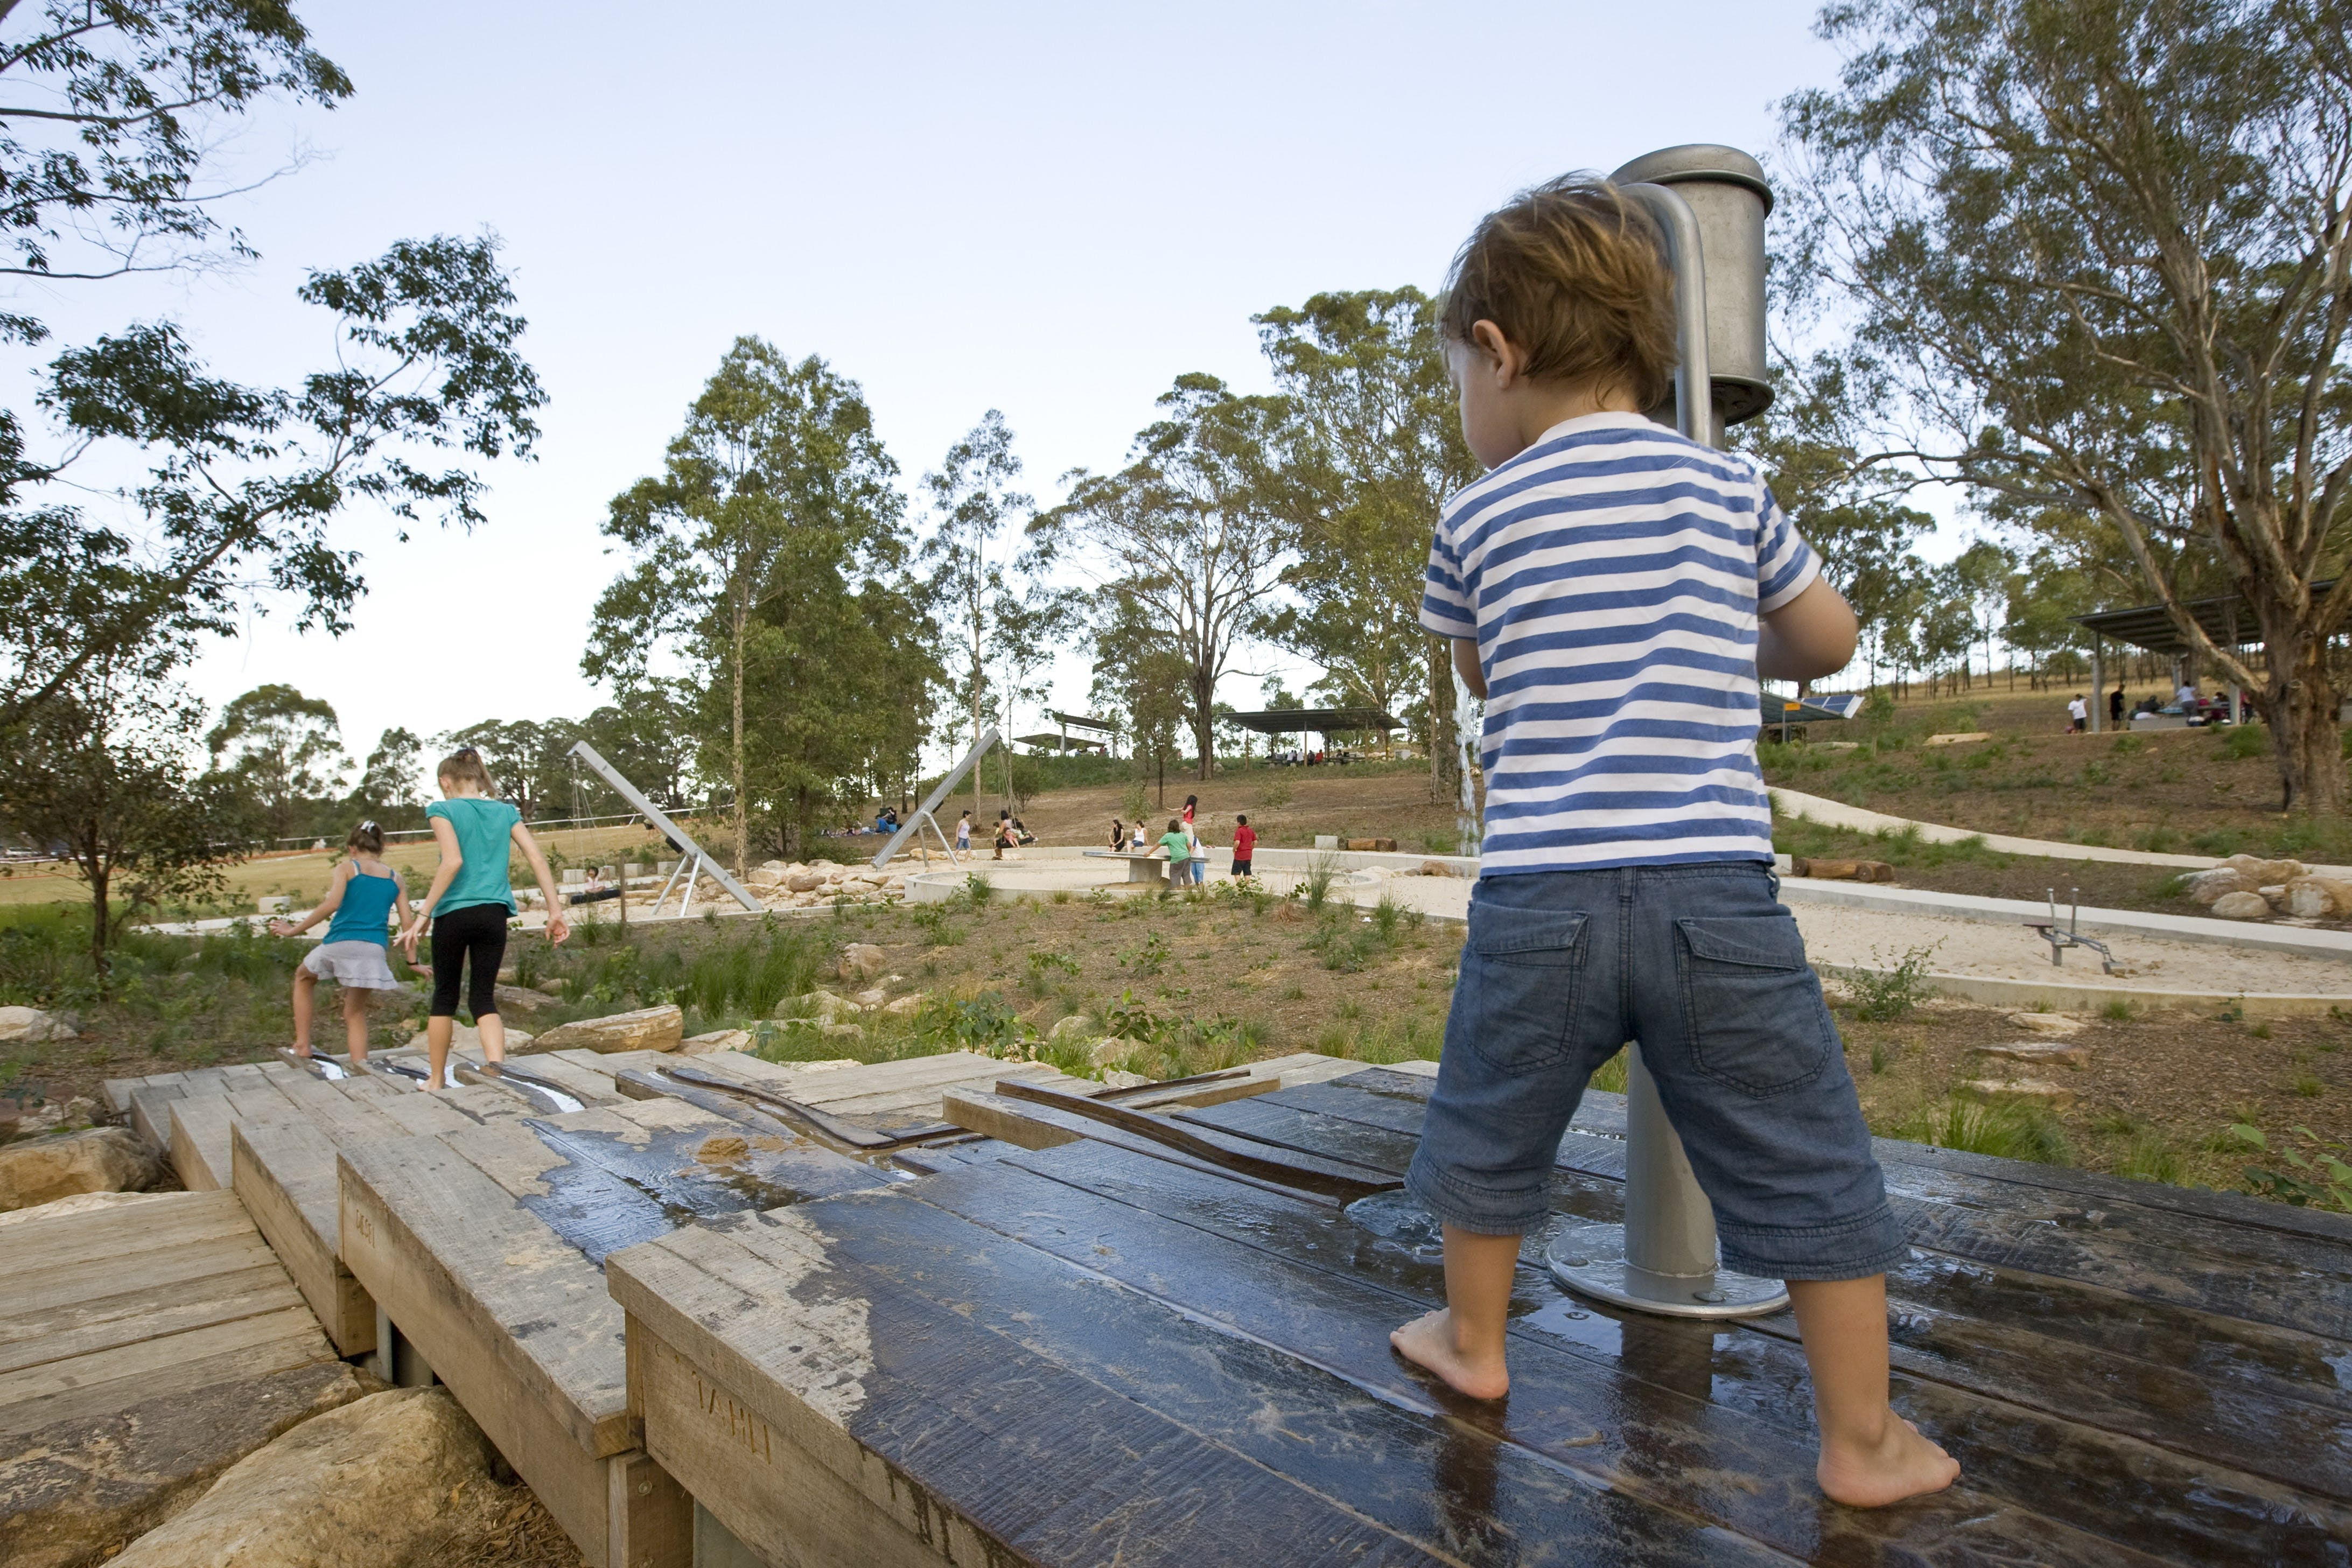 Western Sydney Parklands - Accommodation Tasmania